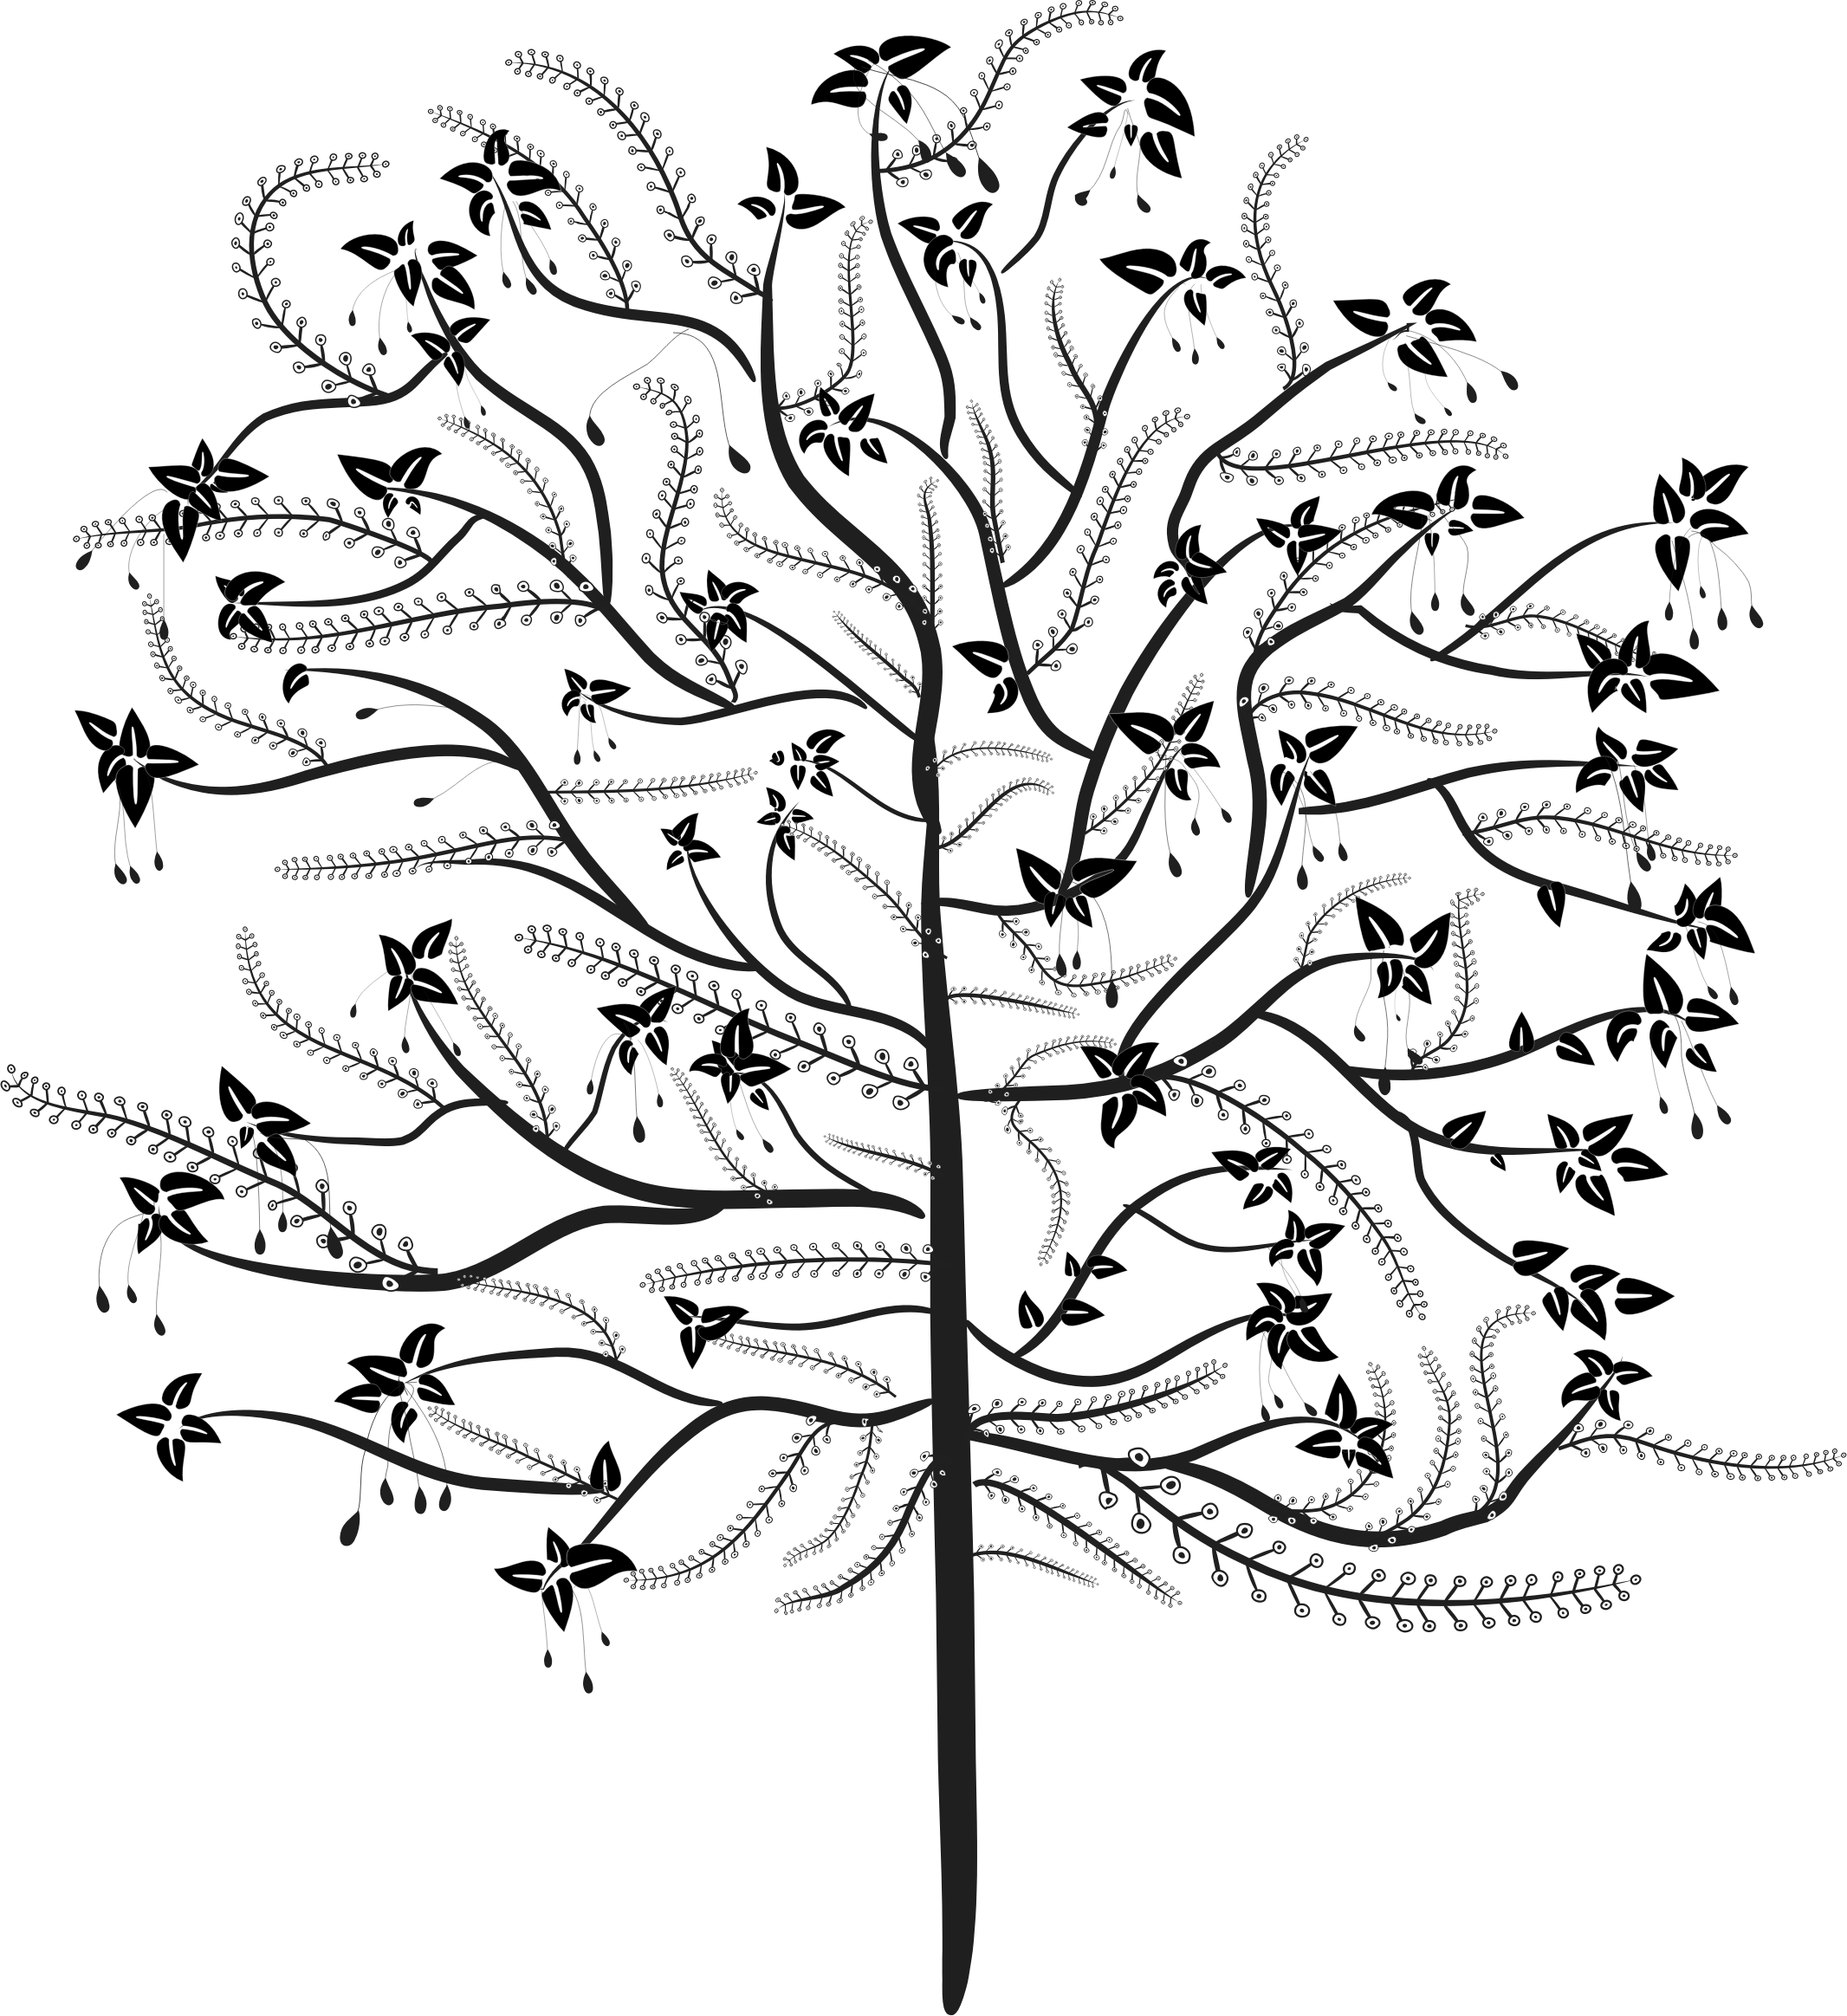 V drawing tree. Stylized at getdrawings com